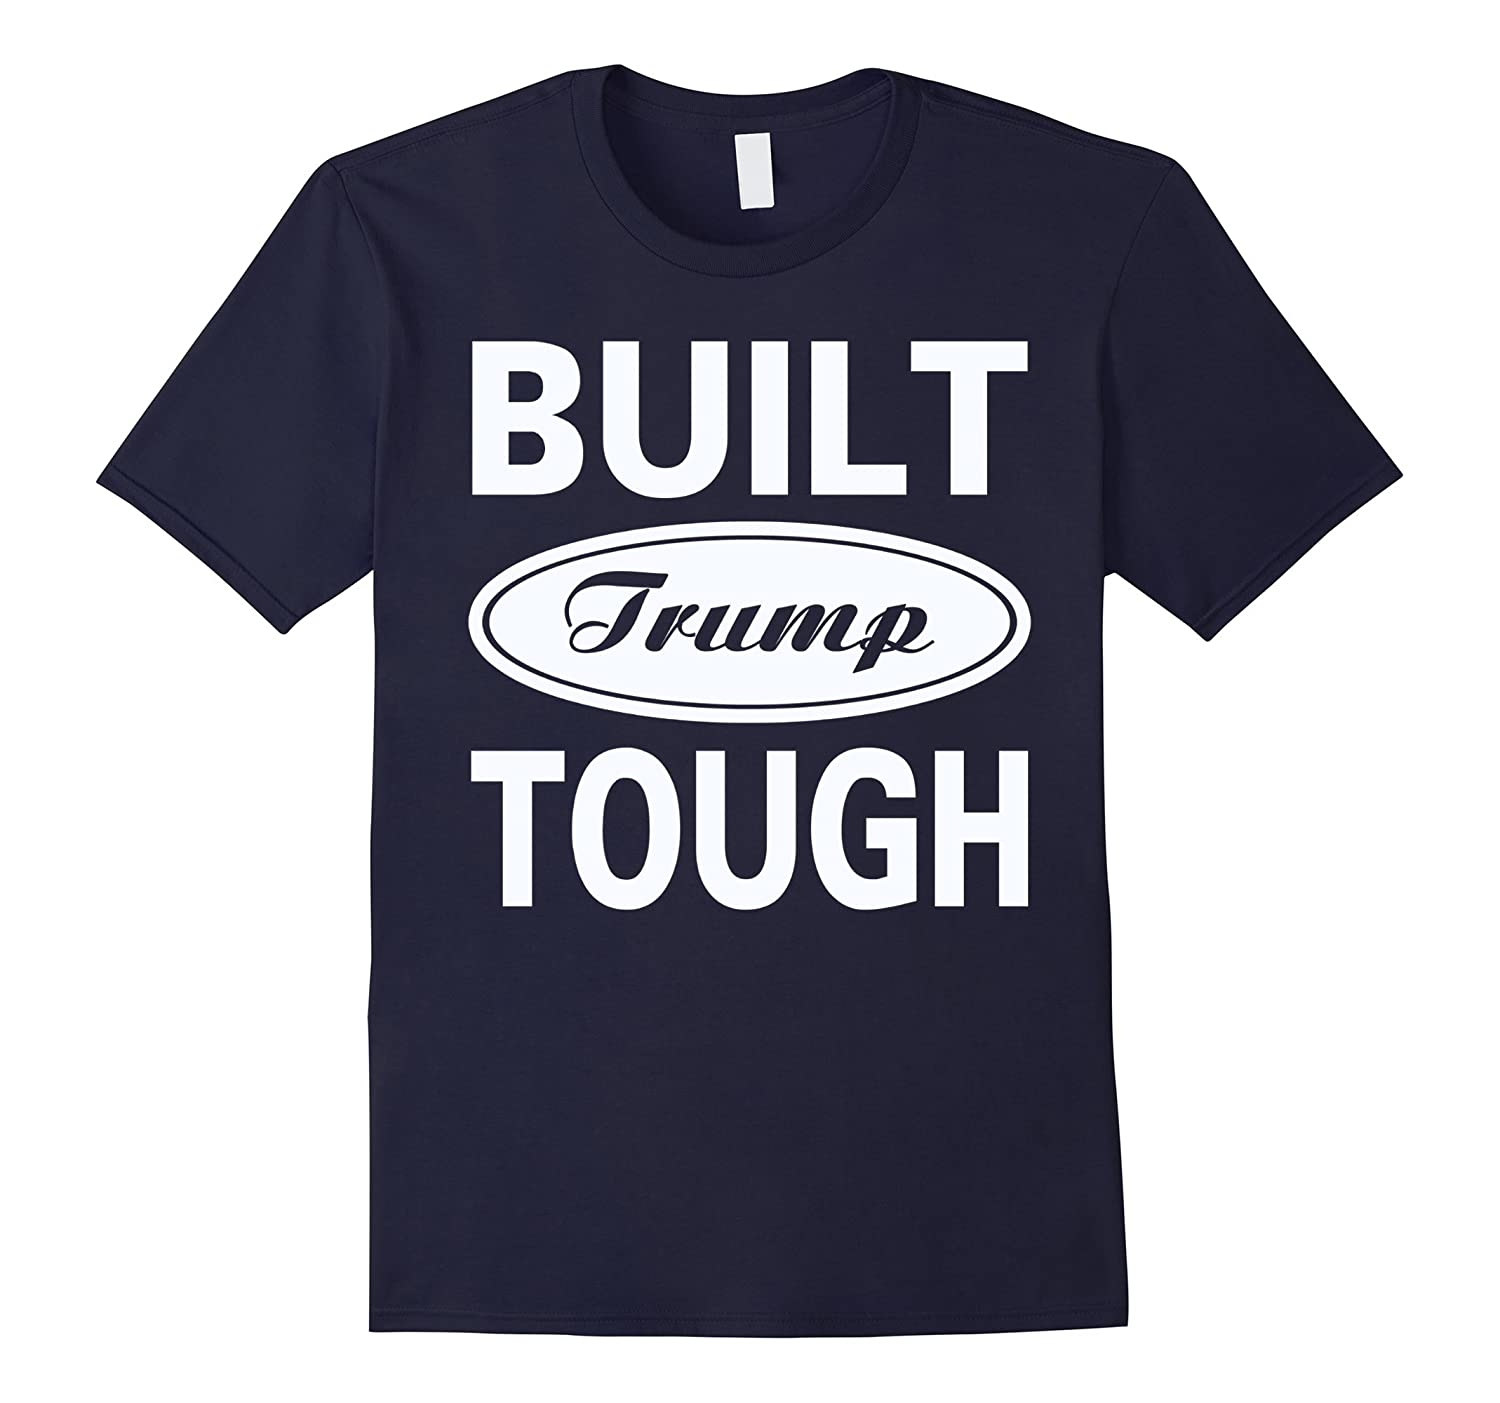 Built Trump Tough T-Shirt Kid Rock Trump Shirt - 5 Colors-TD